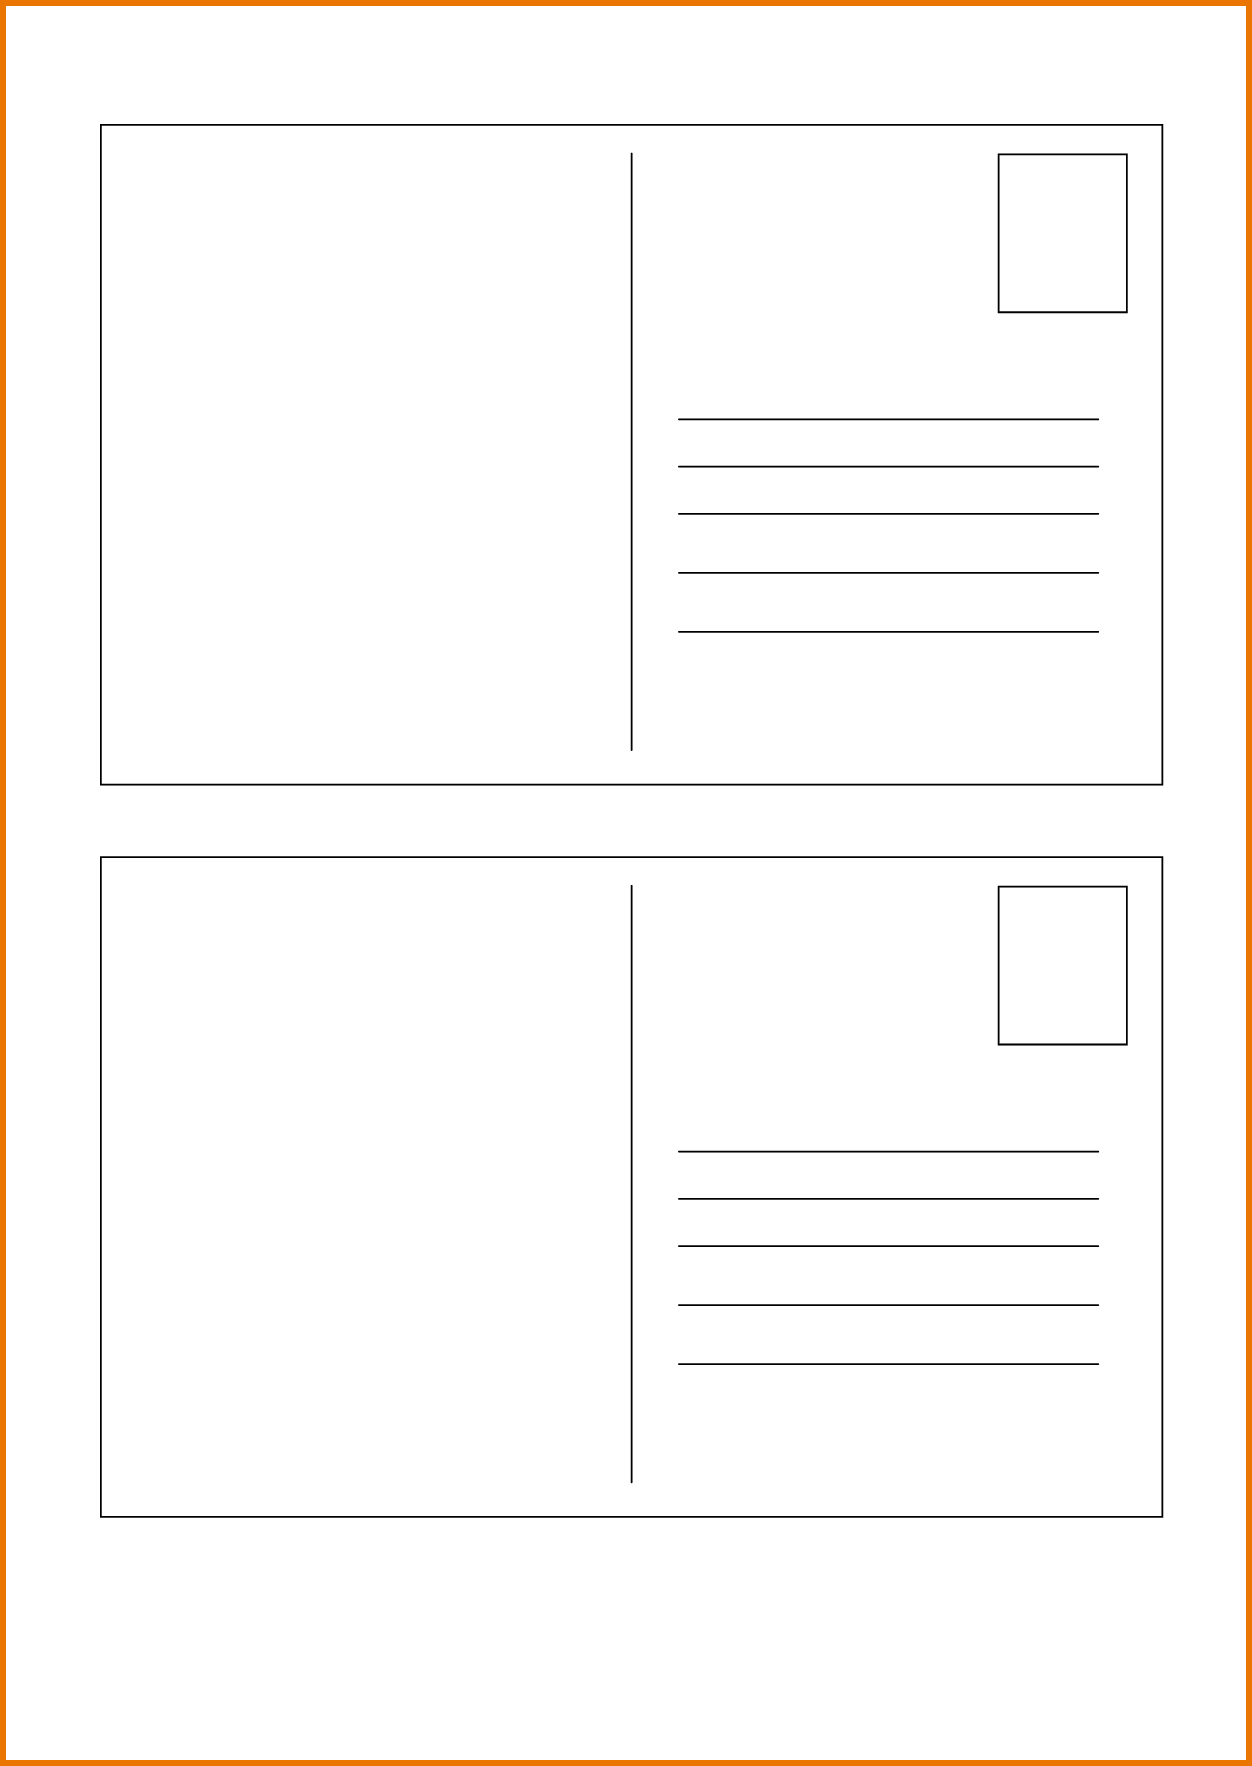 036 Template Ideas Blank Postcard Free Classic White With Pertaining To Microsoft Word 4X6 Postcard Template